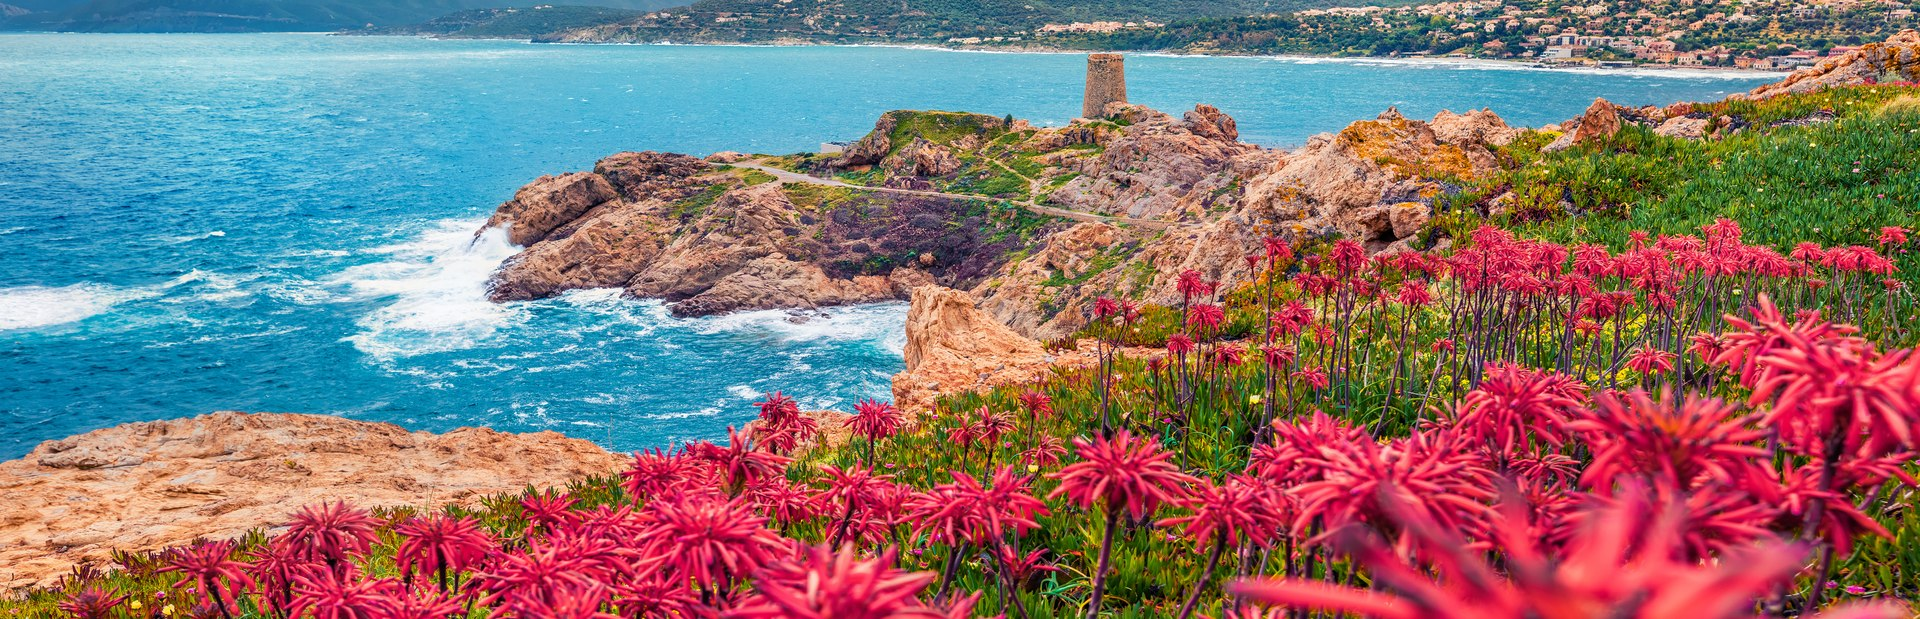 5 reasons to visit Corsica on a luxury yacht charter